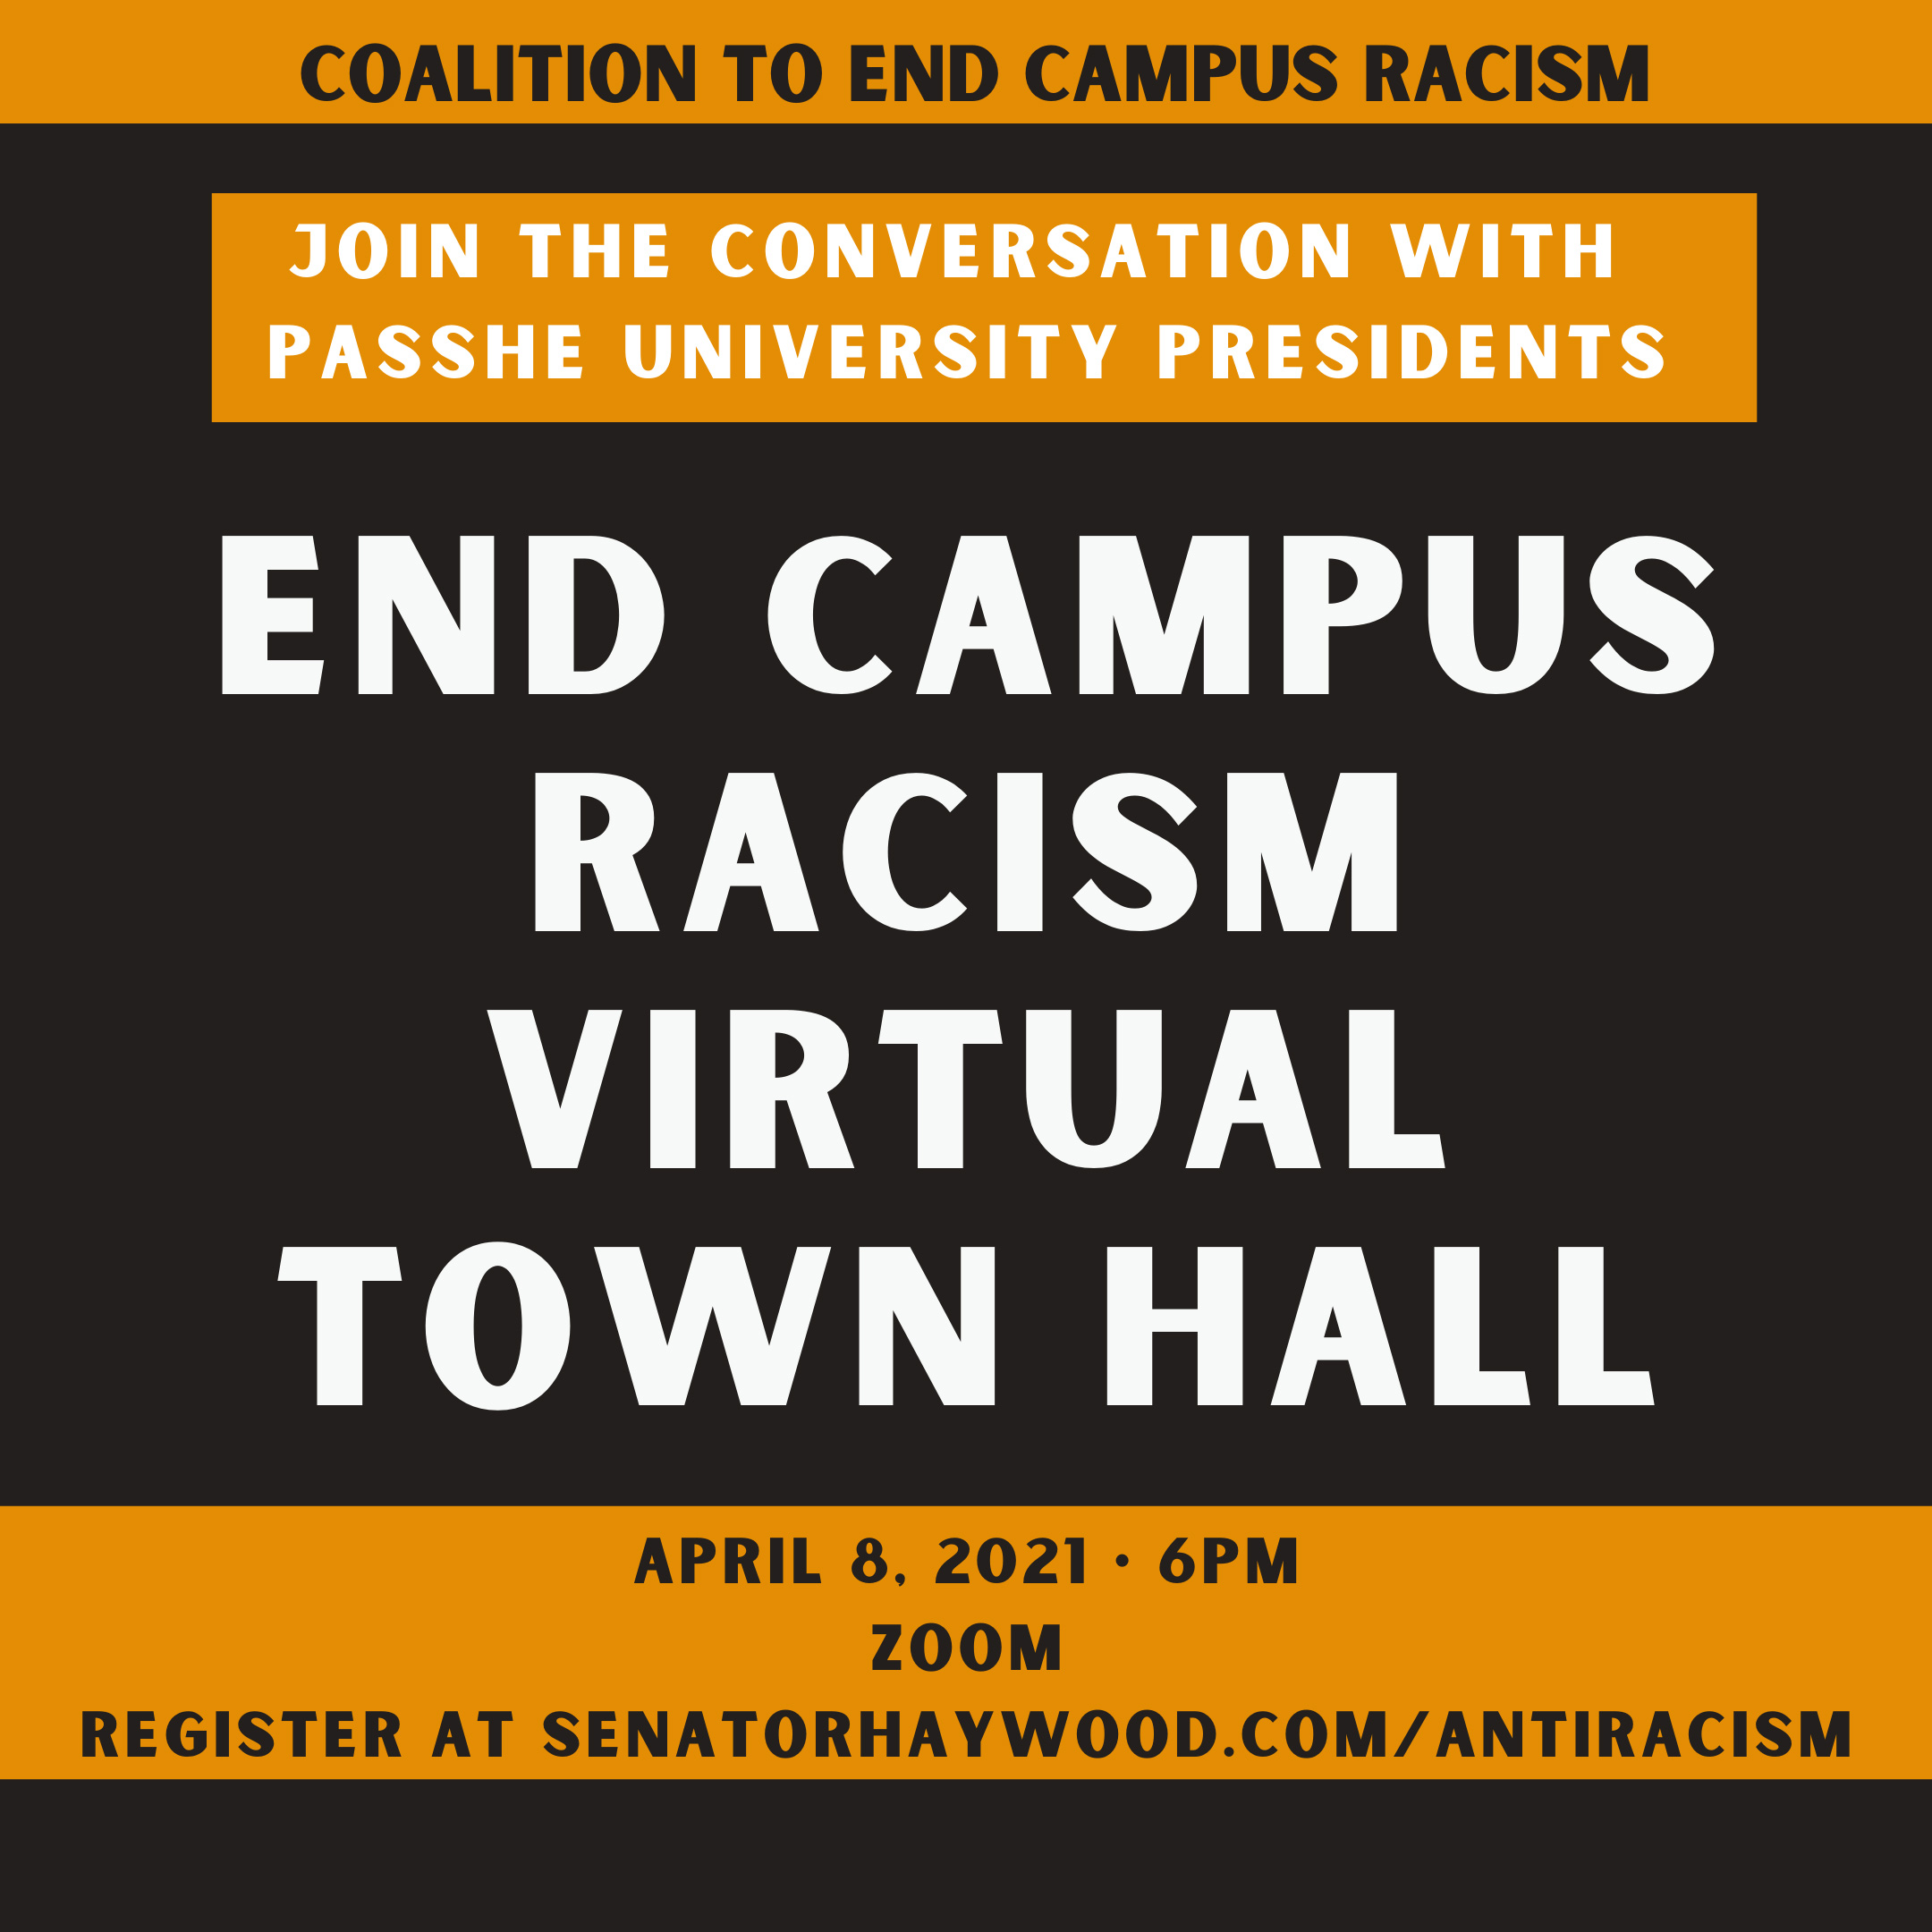 End Campus Racism Virtual Town Hall